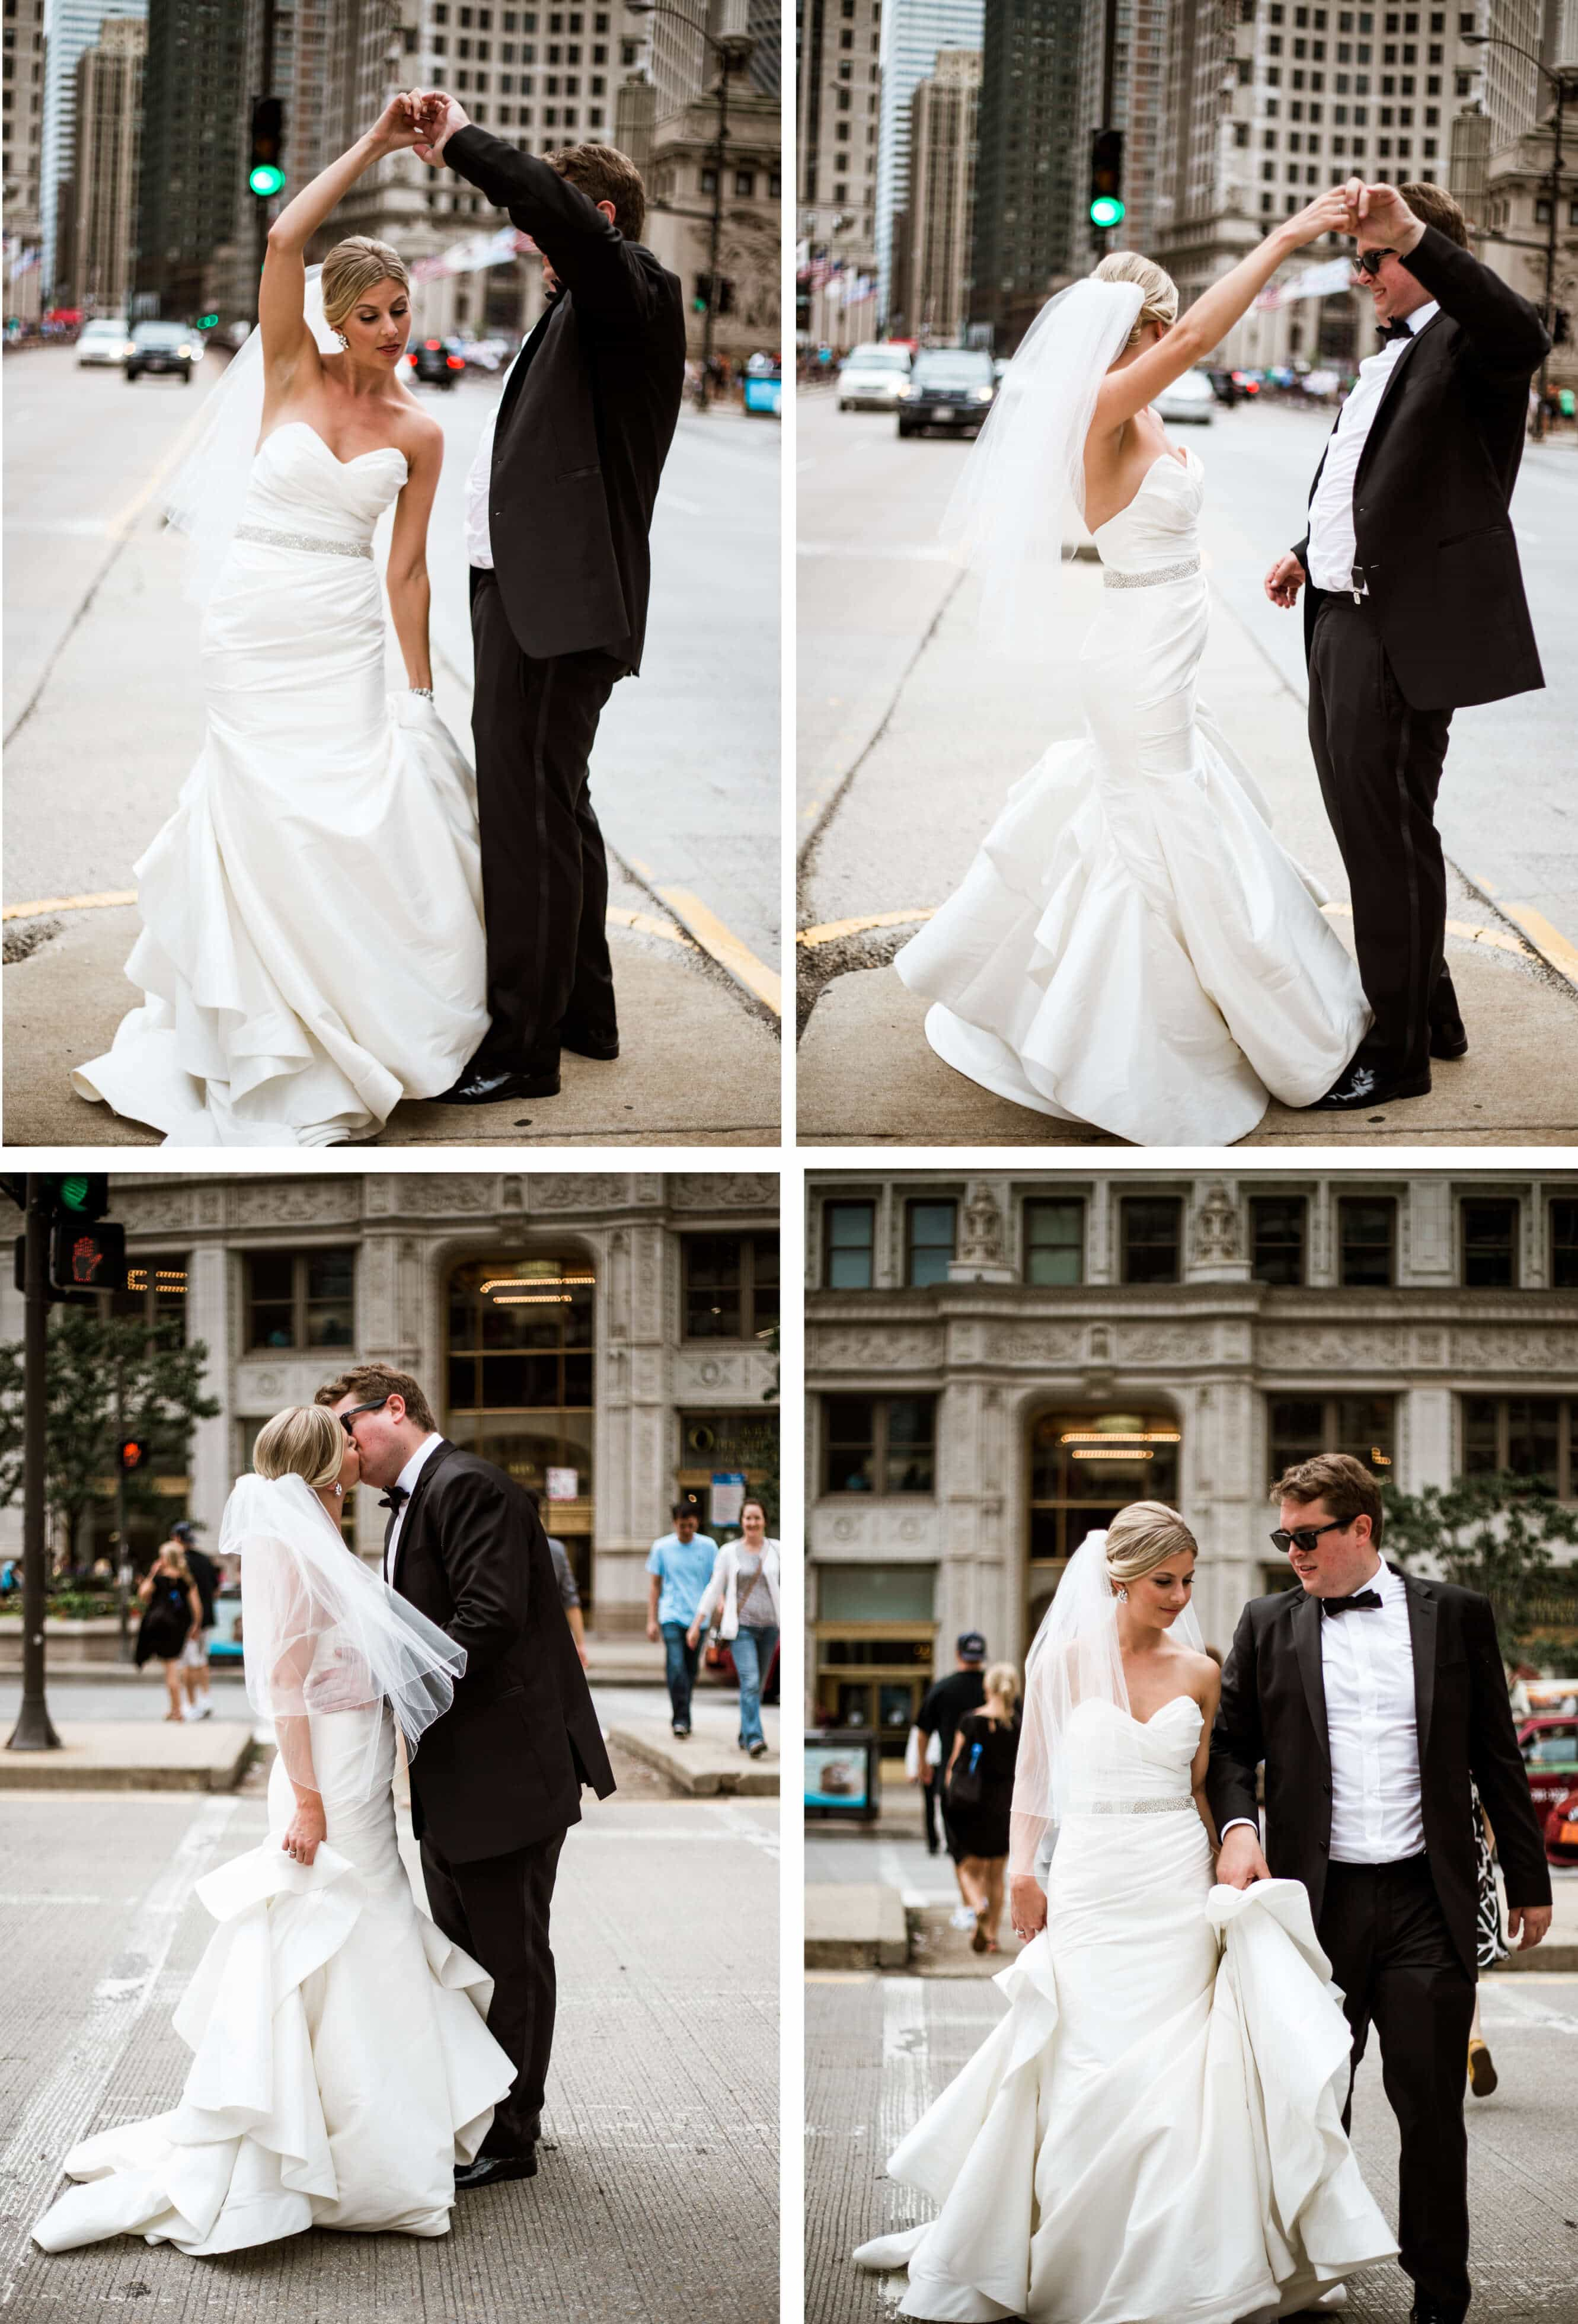 Downtown Chicago wedding portraits - West Sussex Wedding Photographer